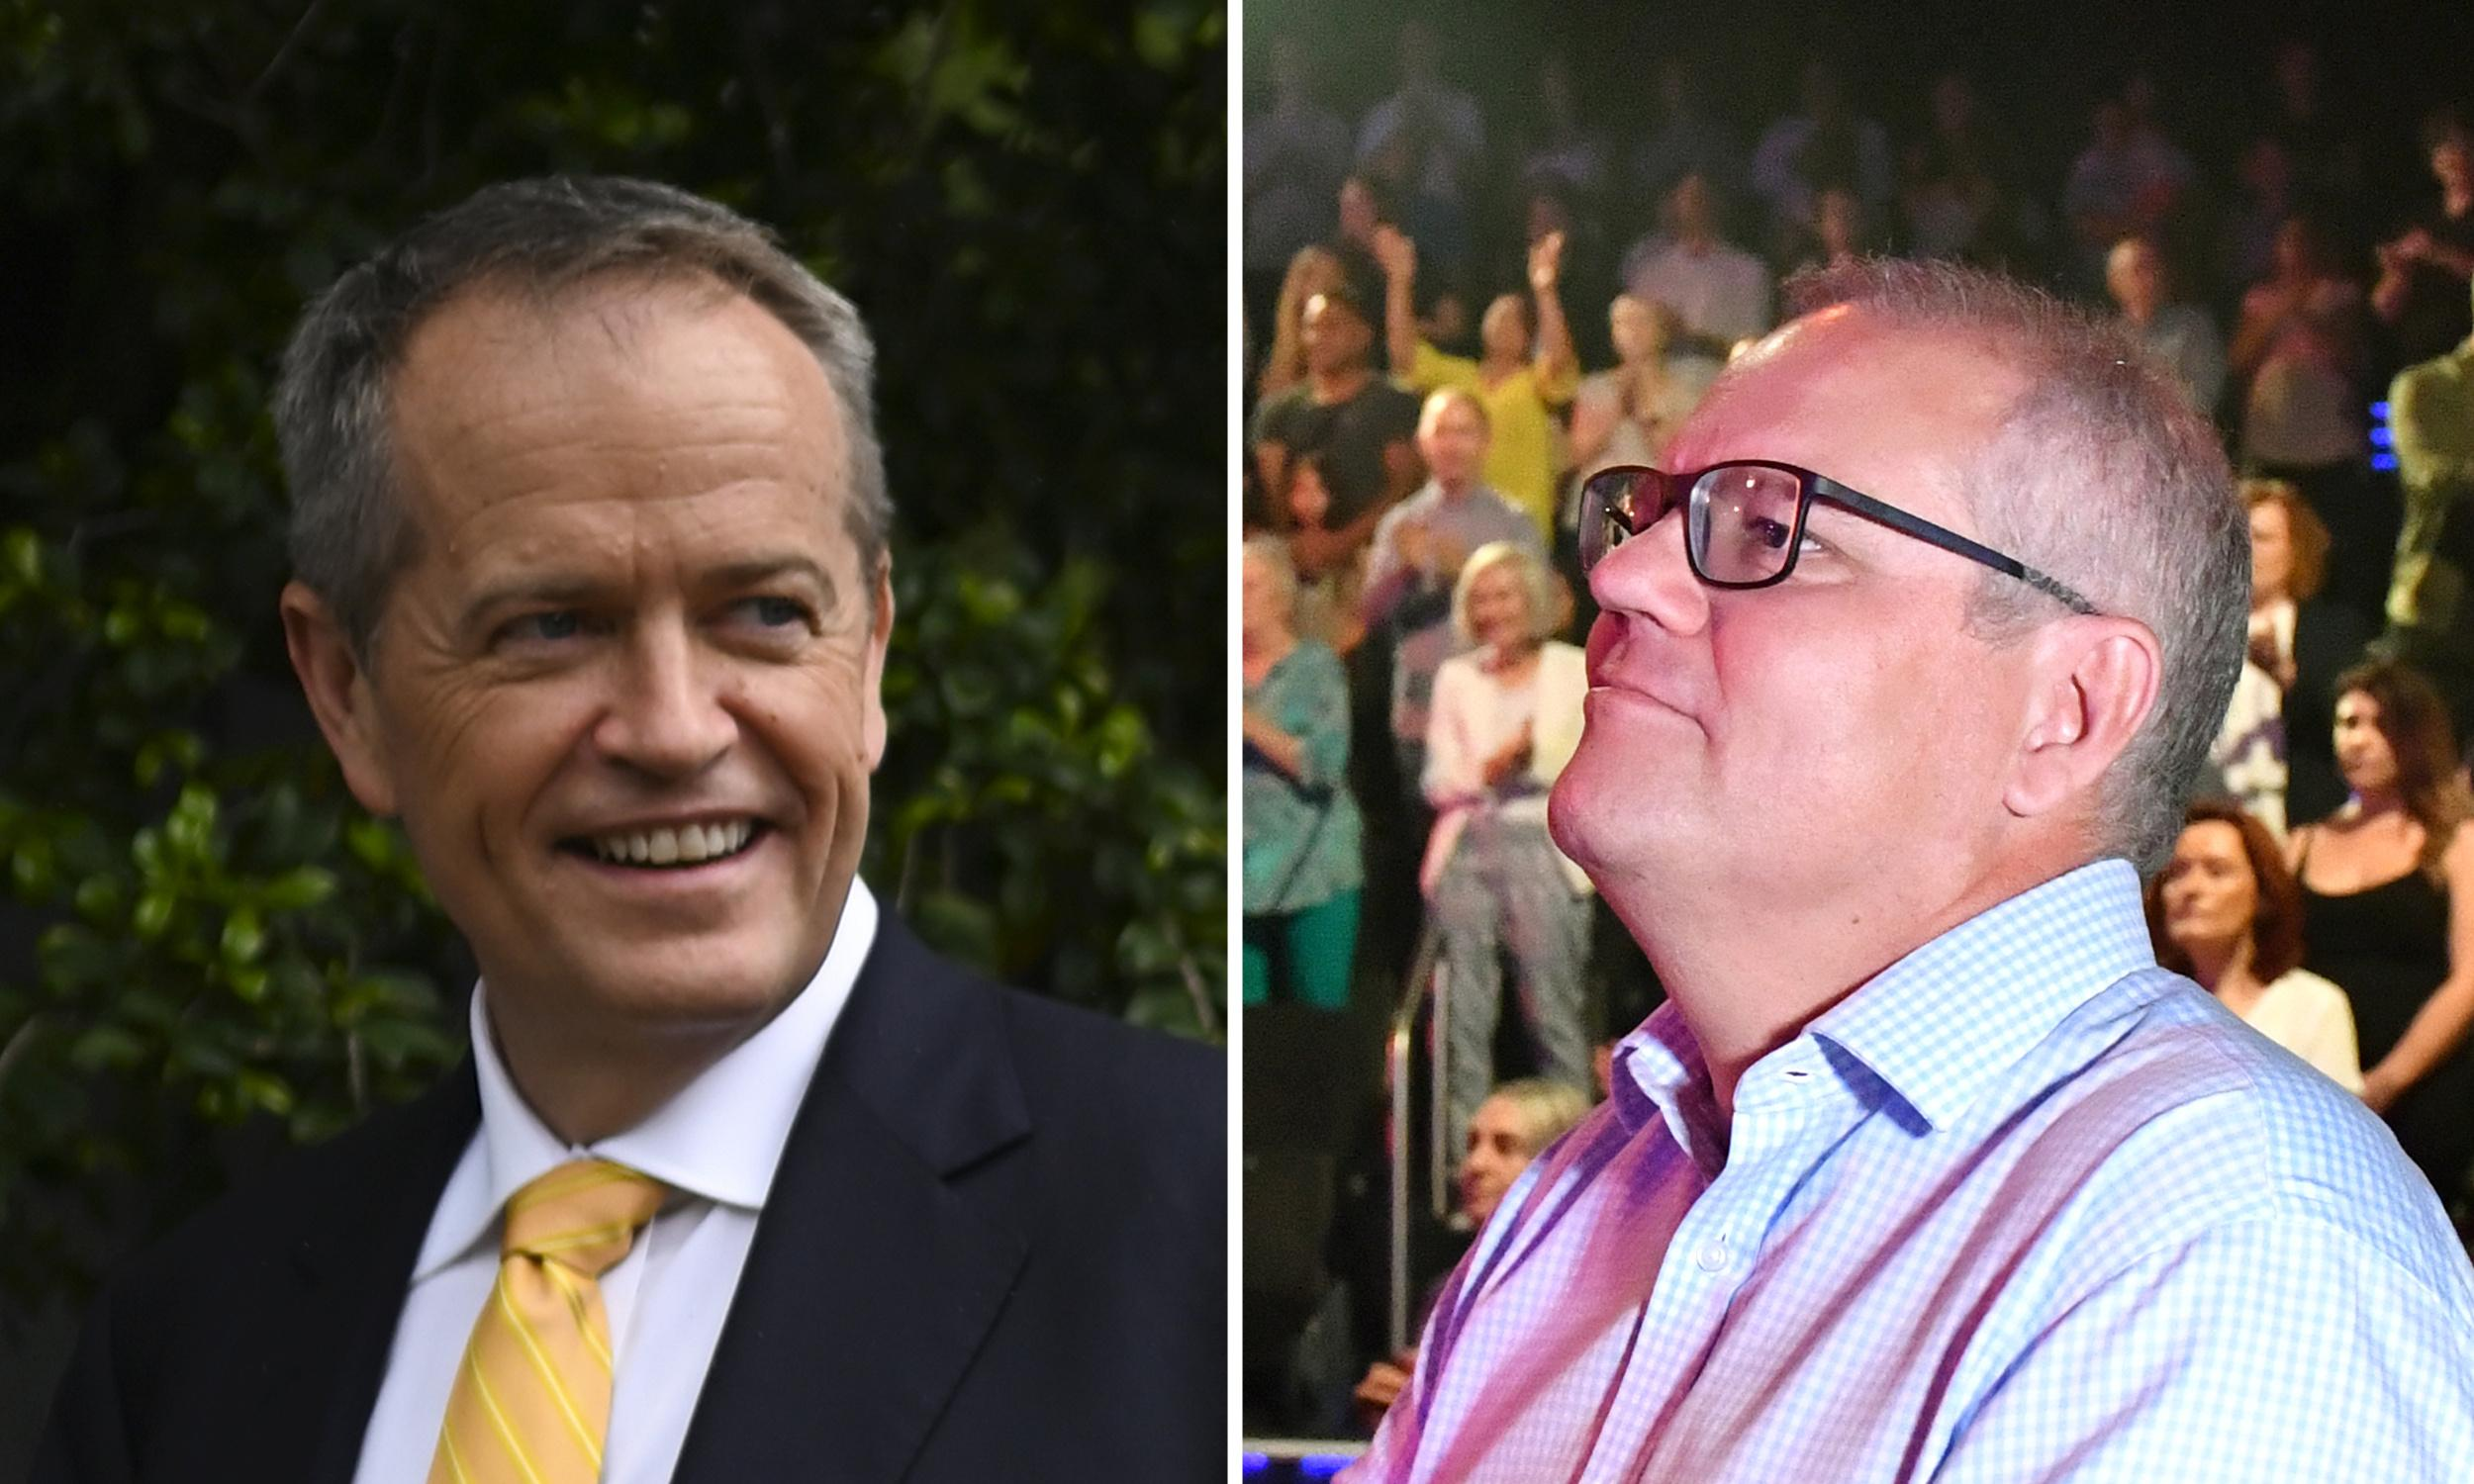 Scott Morrison invites media into Pentecostal church amid election campaign 'truce'